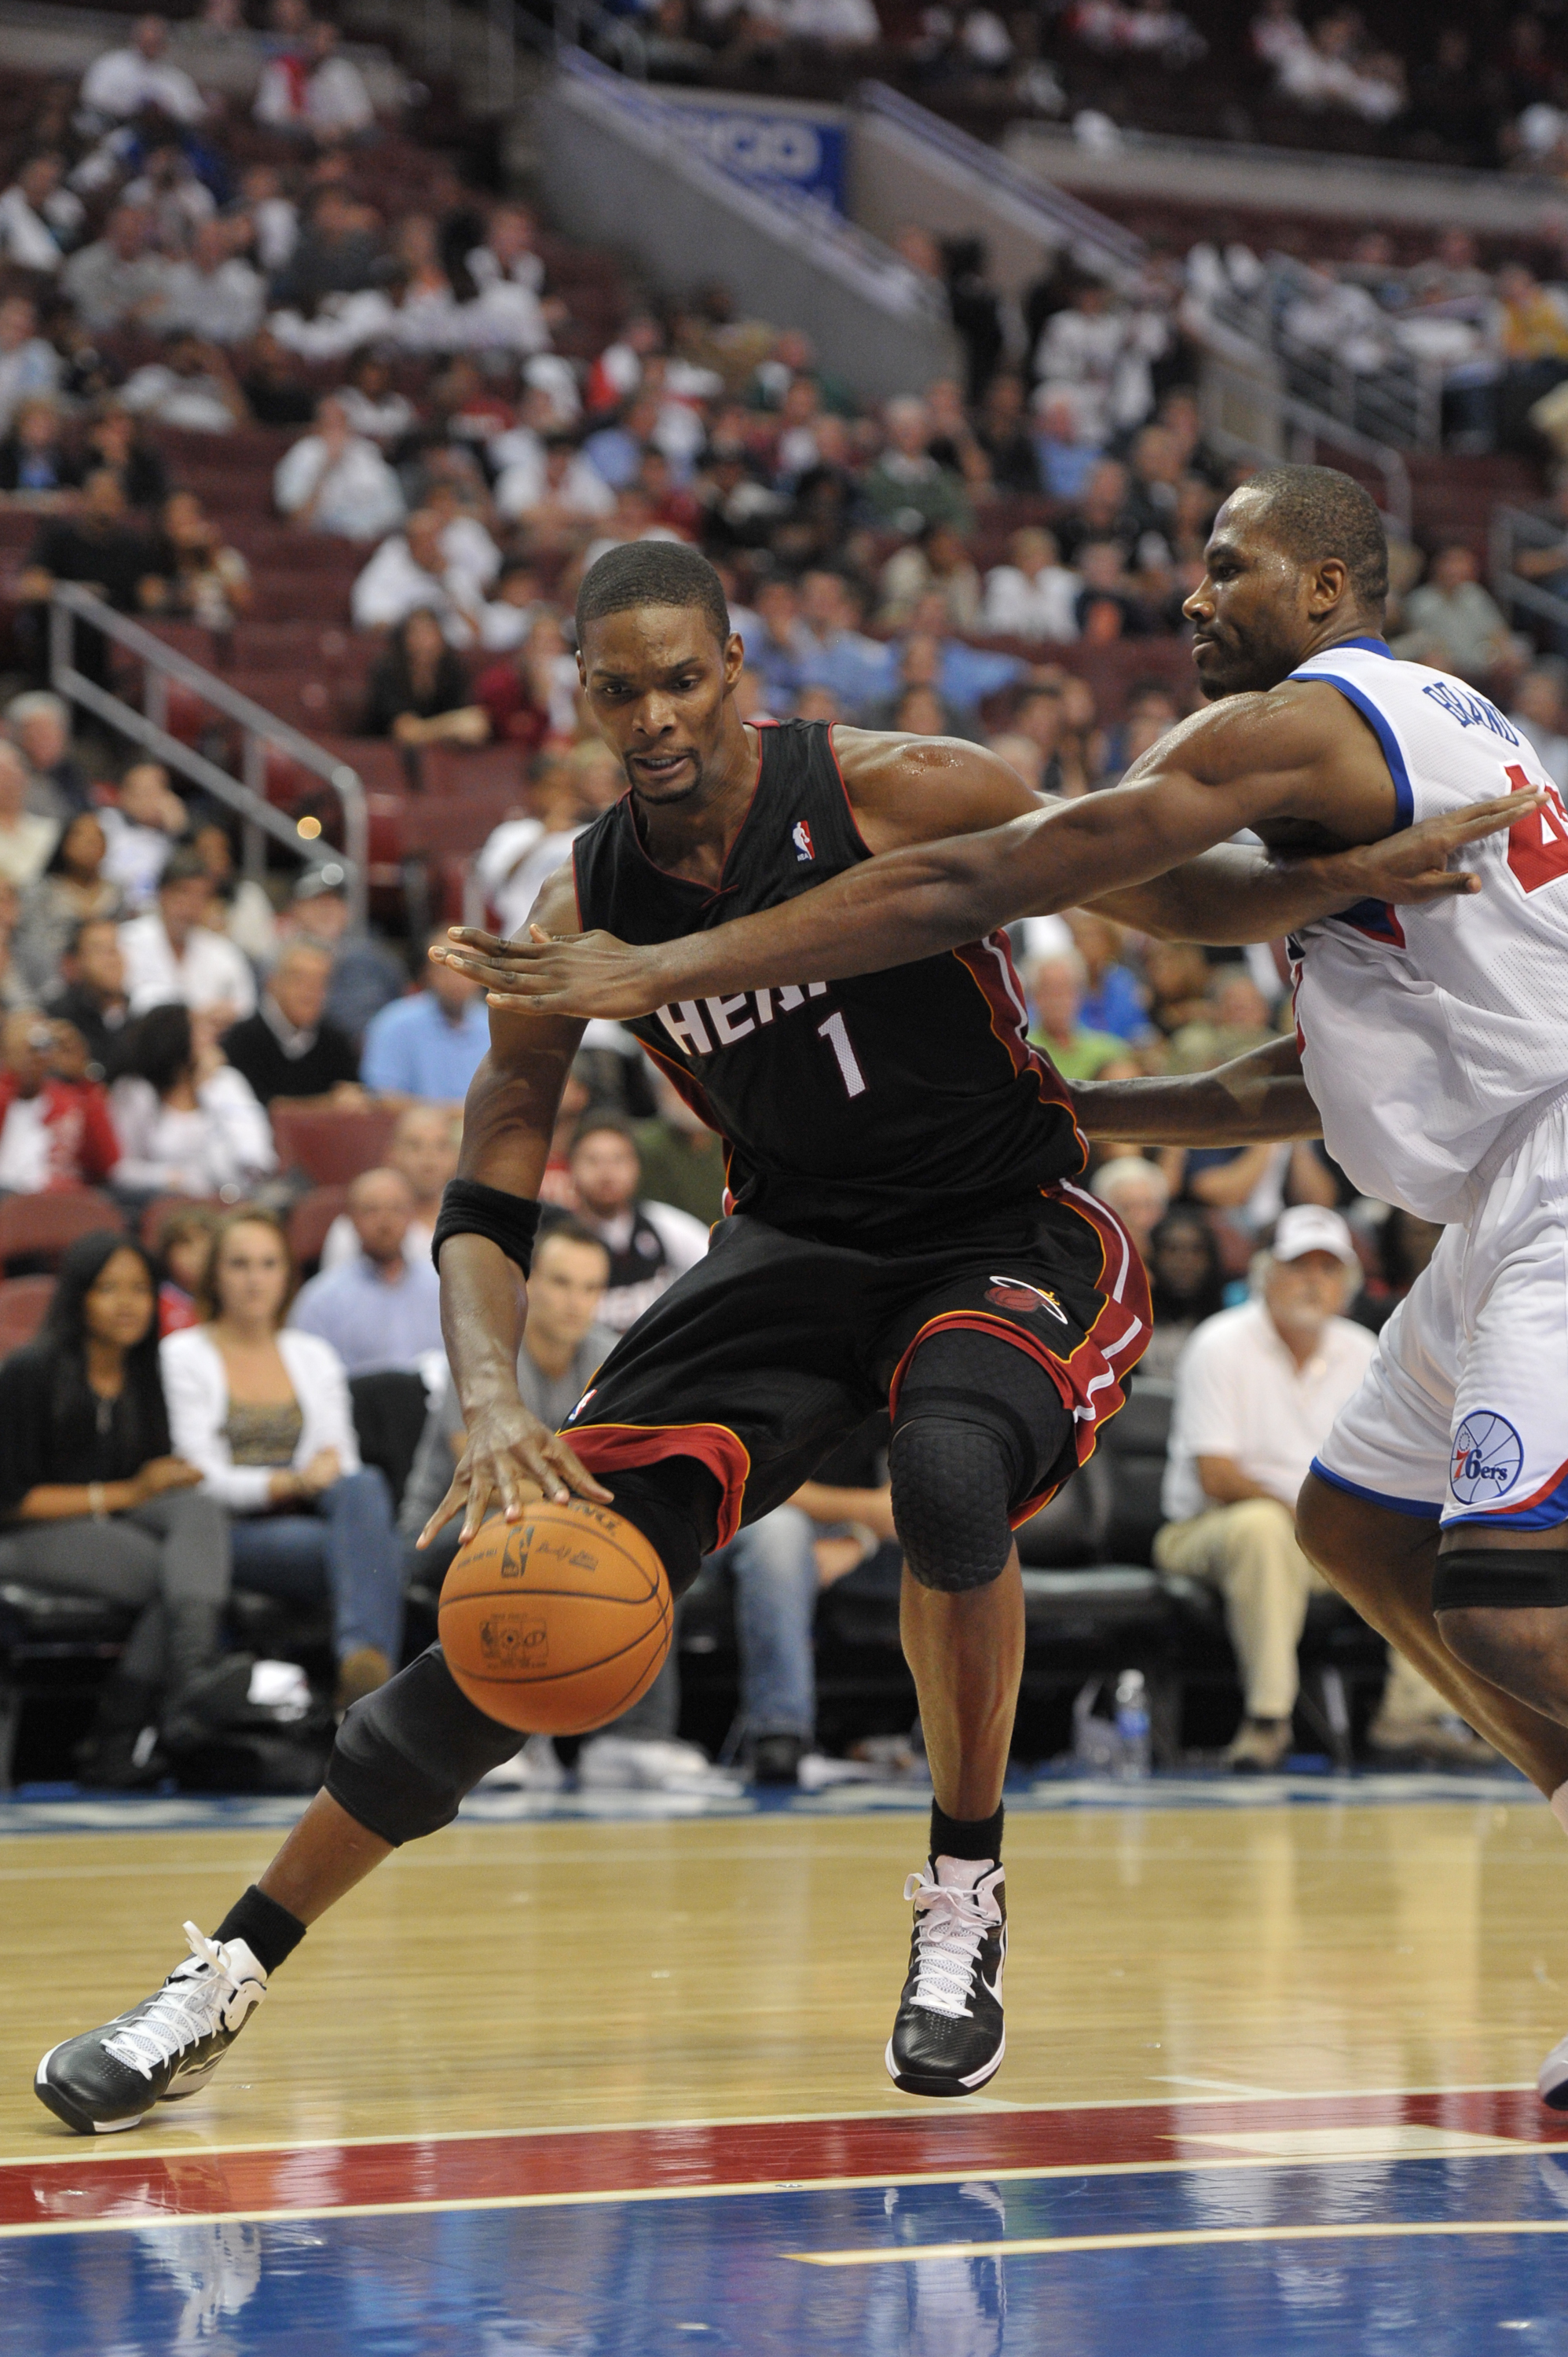 8252e7c8a140 PHILADELPHIA - OCTOBER 27  Chris Bosh  1 of the Miami Heat in action during